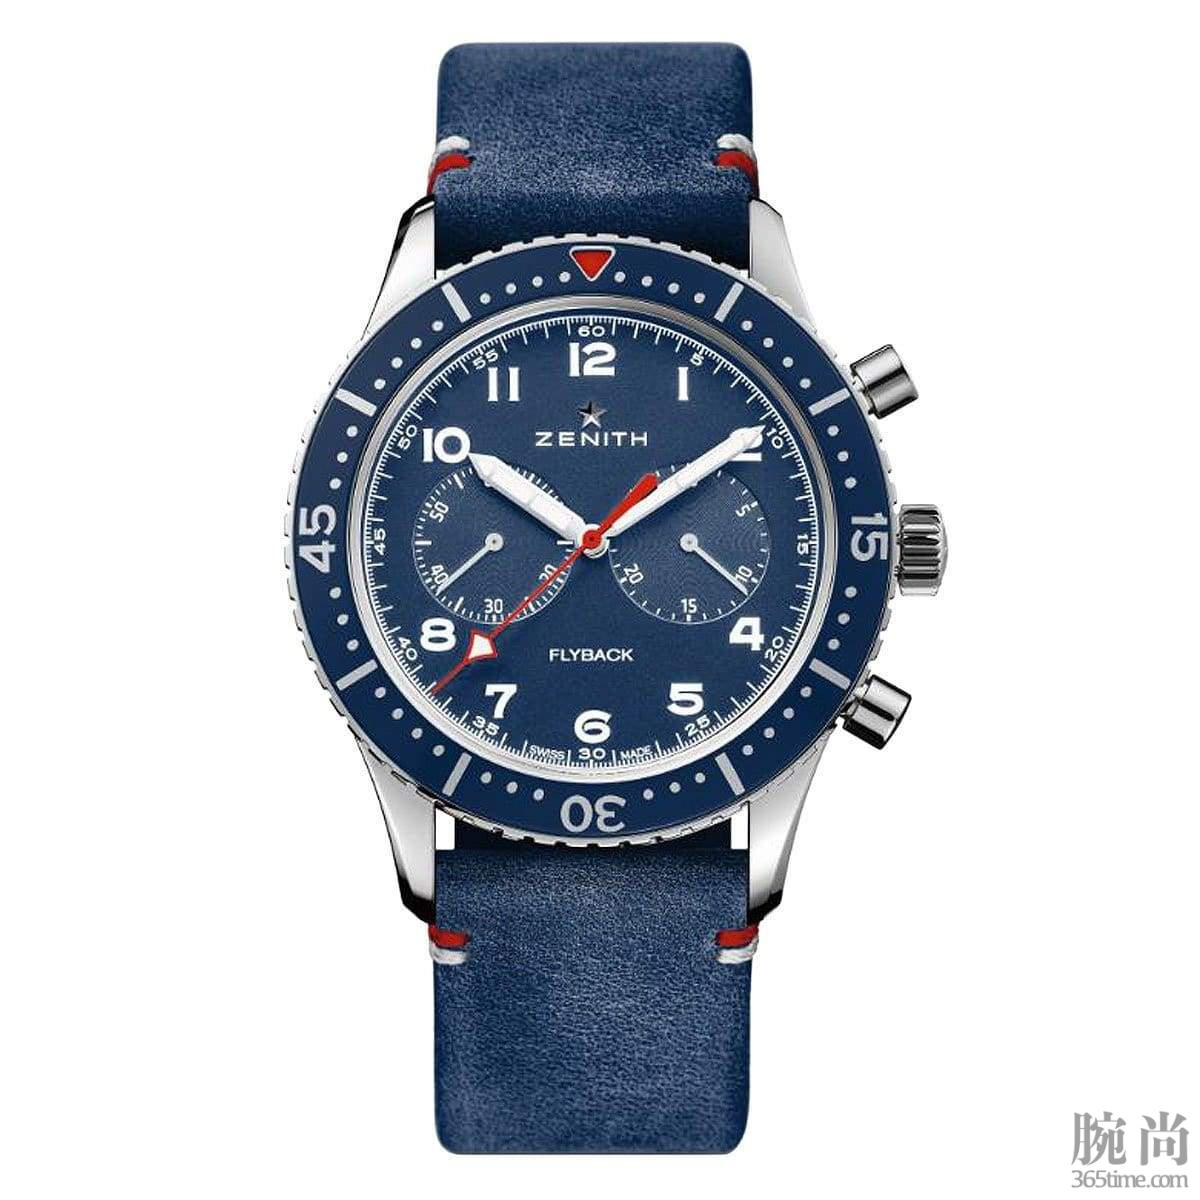 zenith-pilot-cronometro-tipo-cp-2-flyback-usa-limited-edition-5000-10000-43-45mm-automatic-men-new-watches-manfredi-jewels_644.jpg